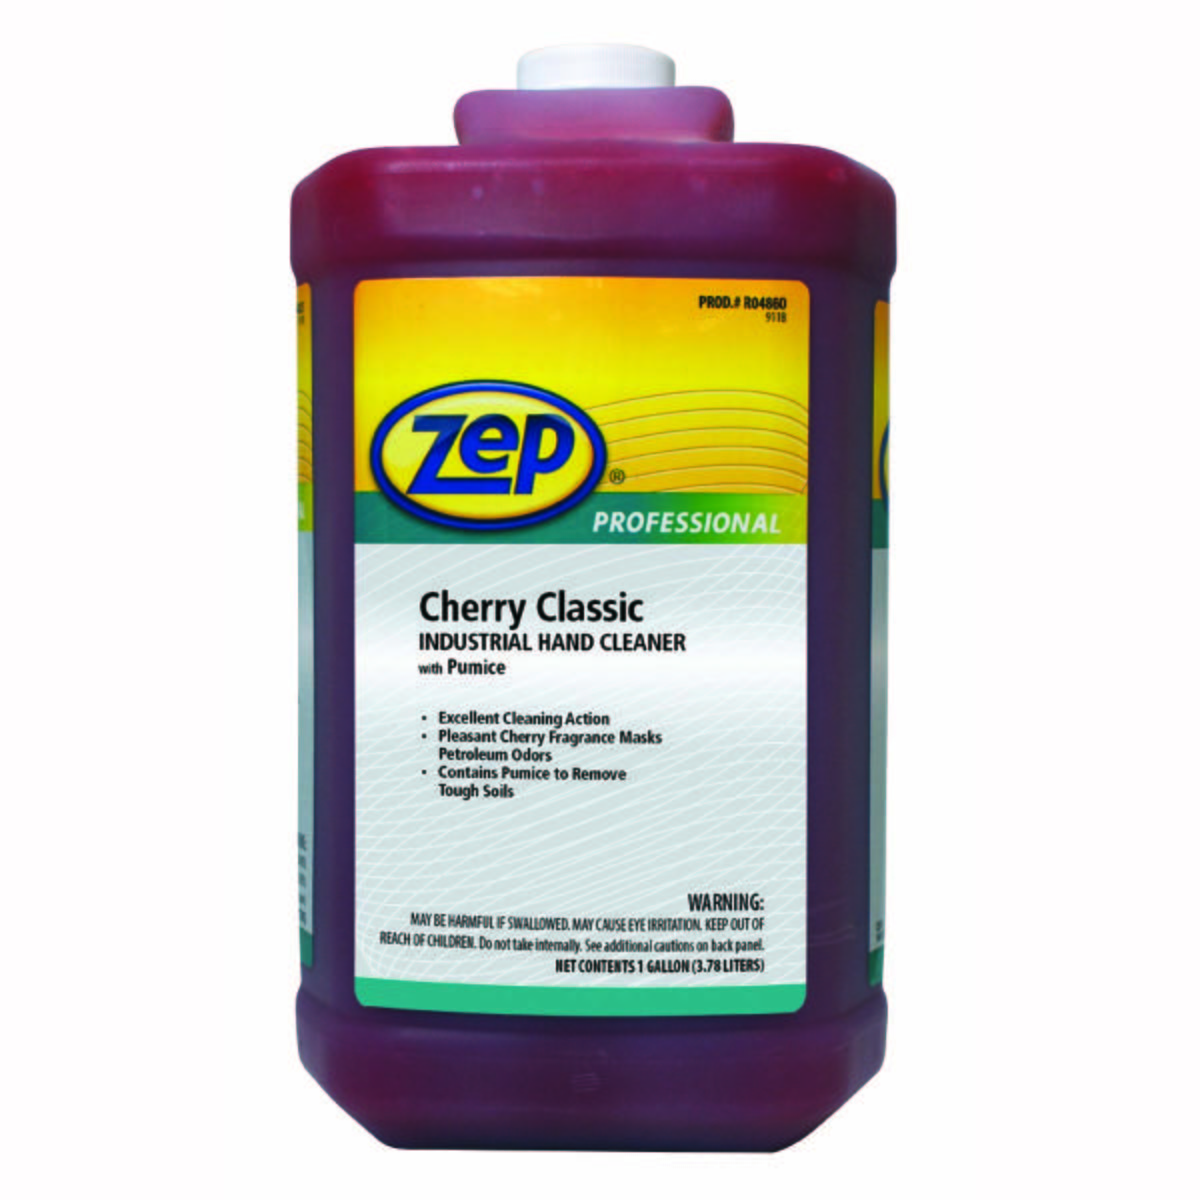 ZEP Cherry Classic Industrial Hand Cleaner With Pumice